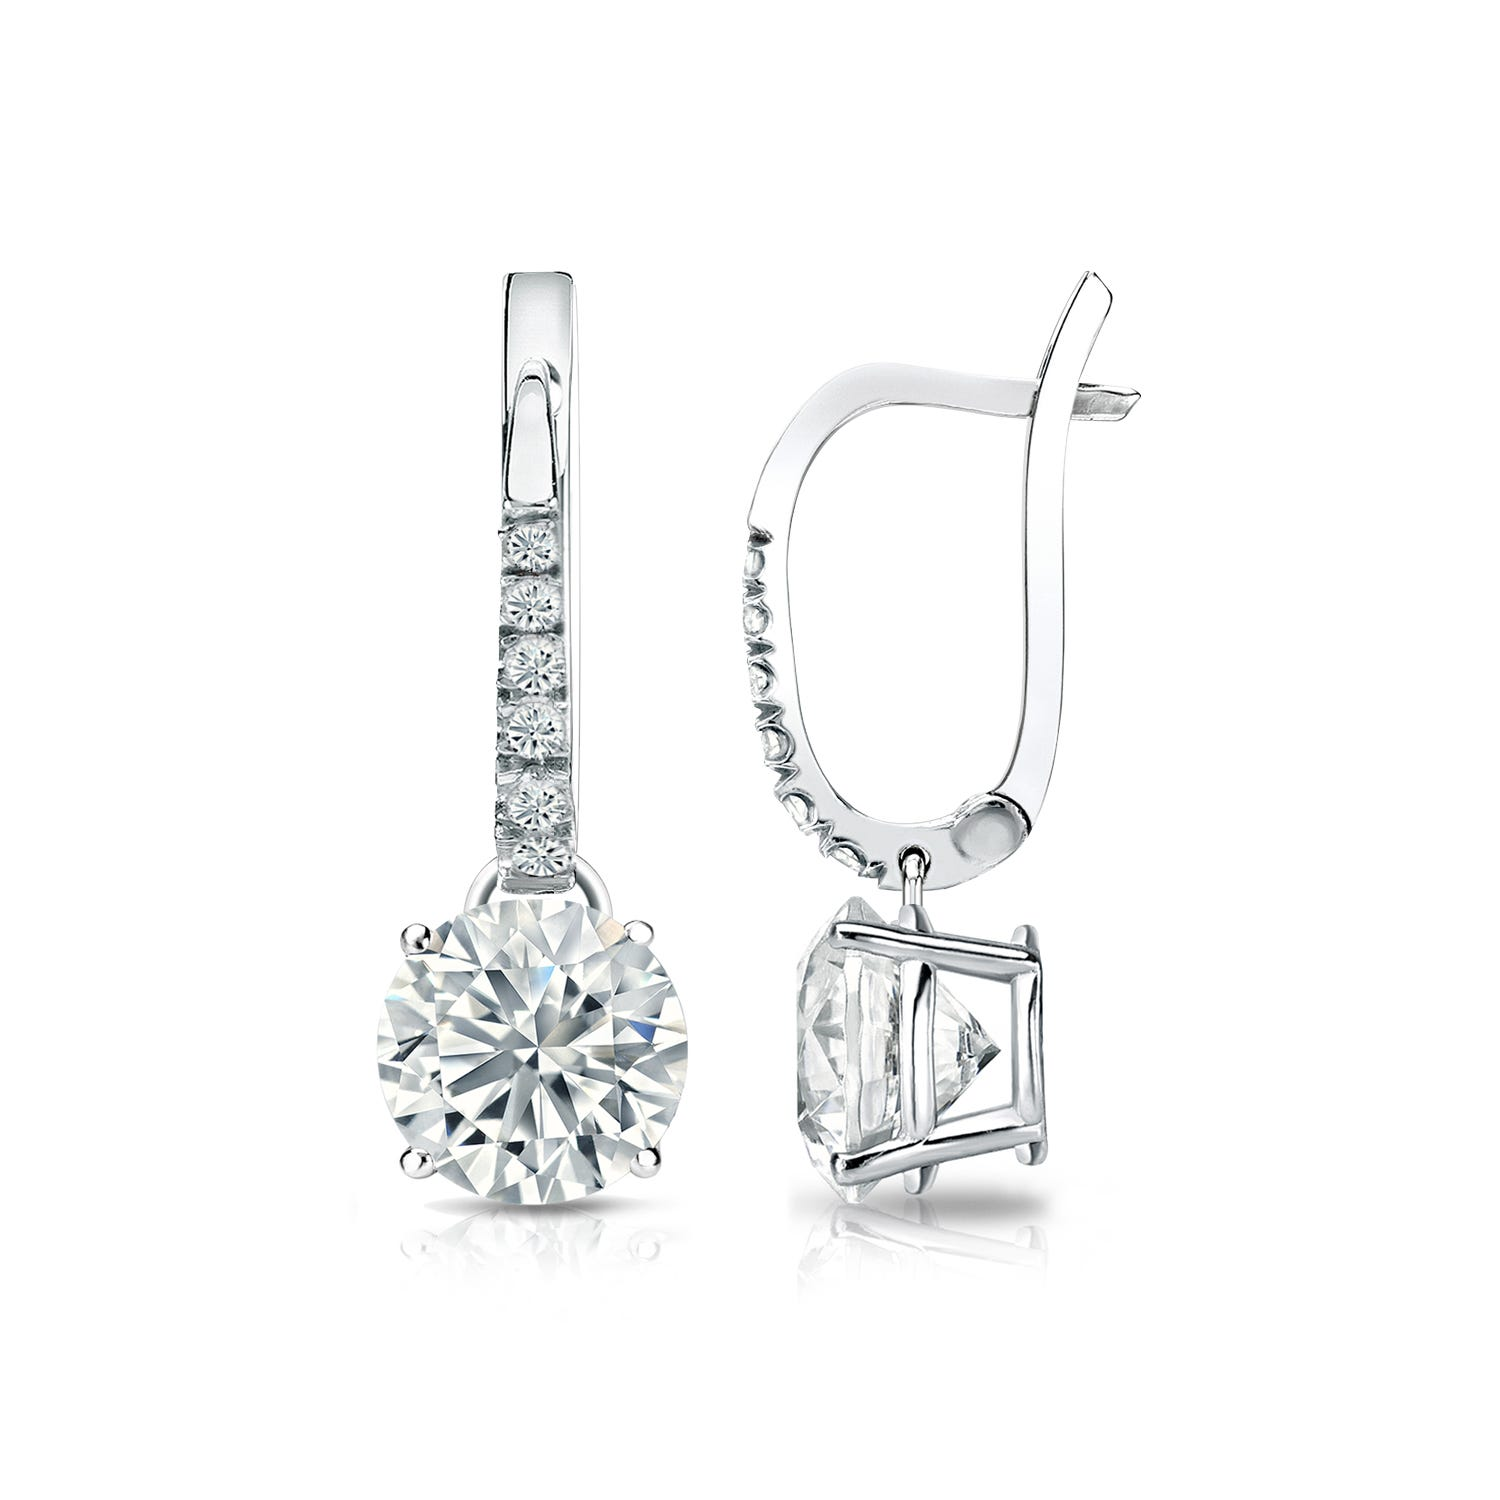 Diamond 1 1/2ctw. 4-Prong Round Drop Earrings in 18k White Gold VS2 Clarity